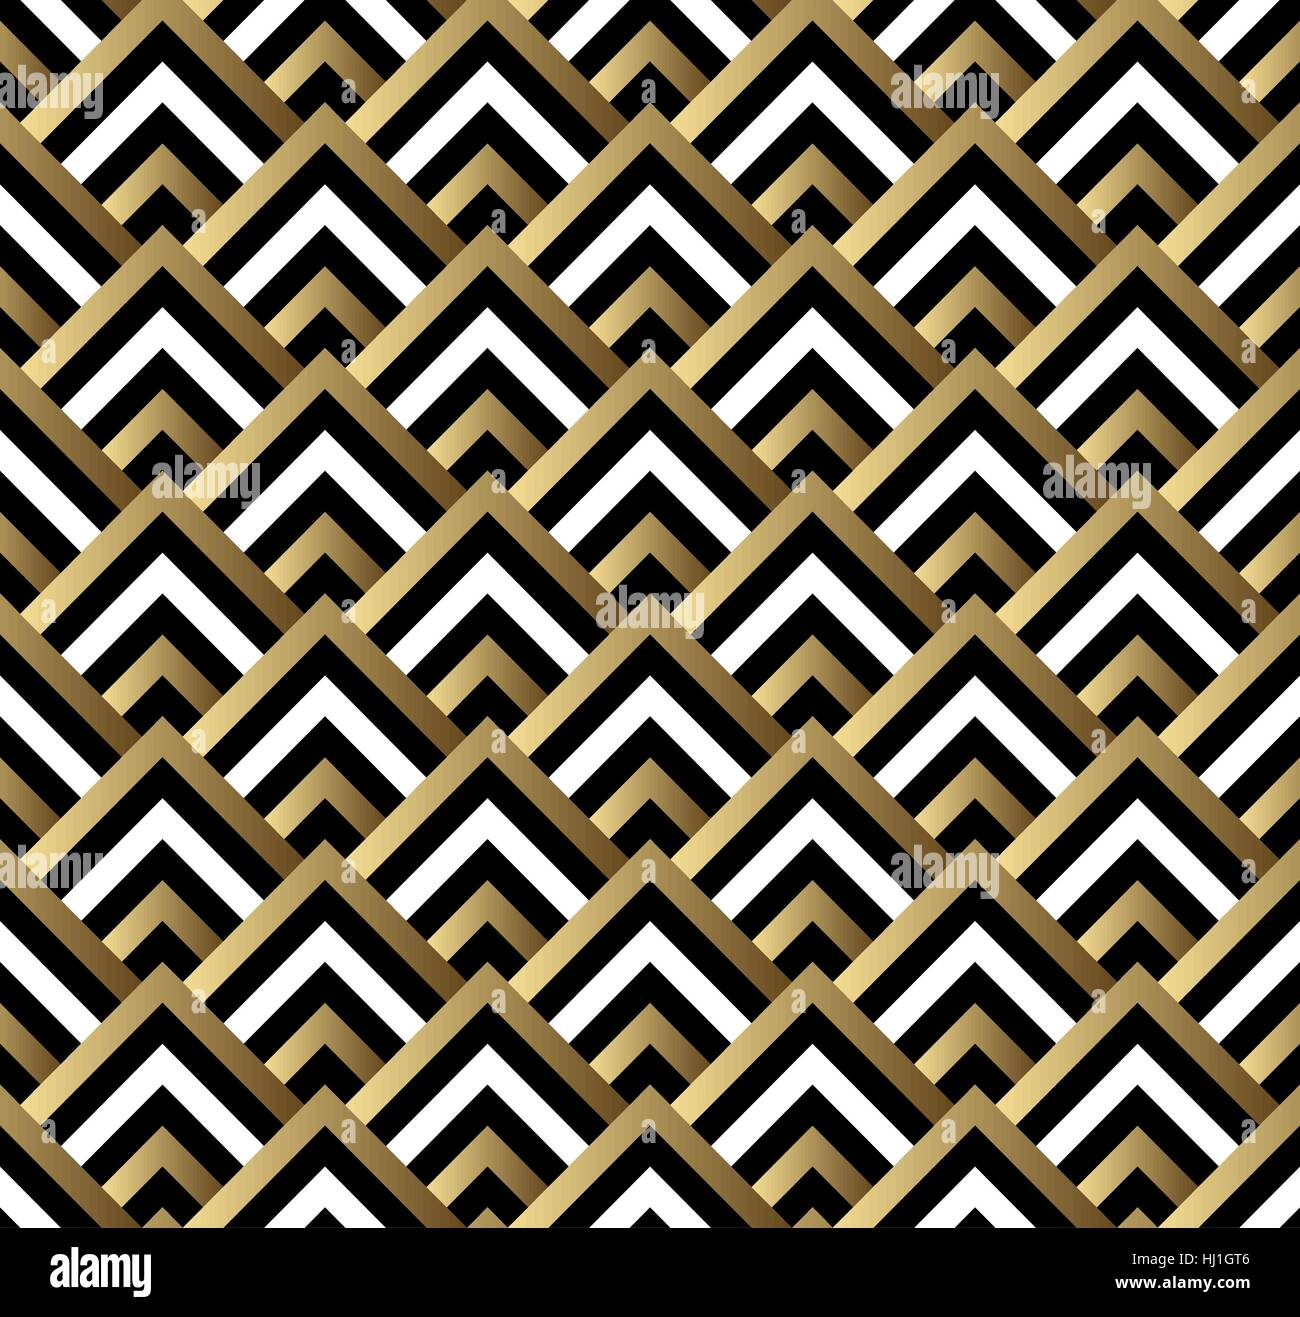 Art deco patterns gold